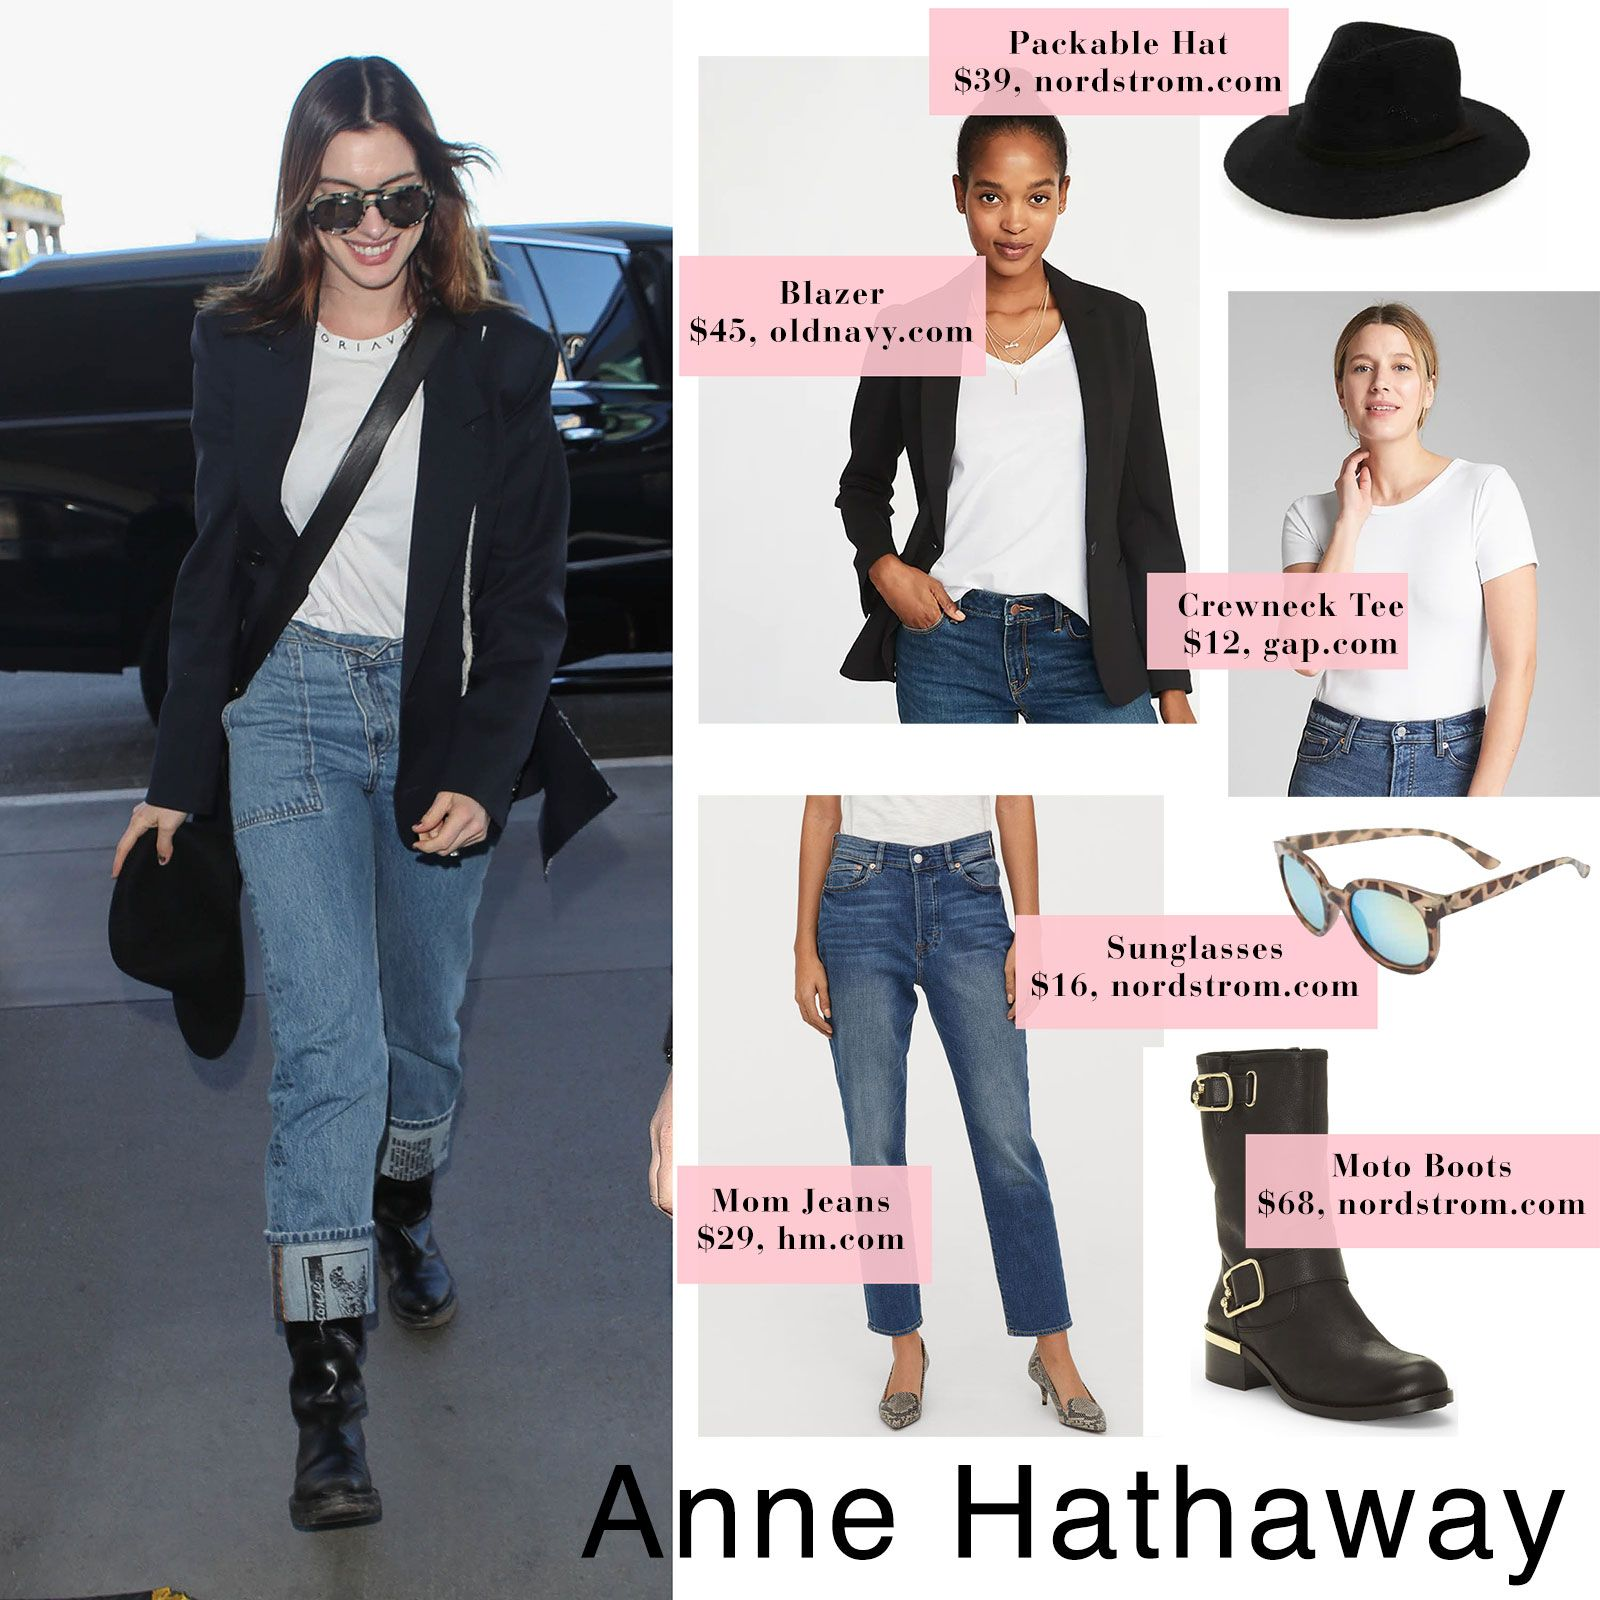 e688467c17184 Anne Hathaway s Black Blazer and Mom Jeans Airport Style - The Budget Babe